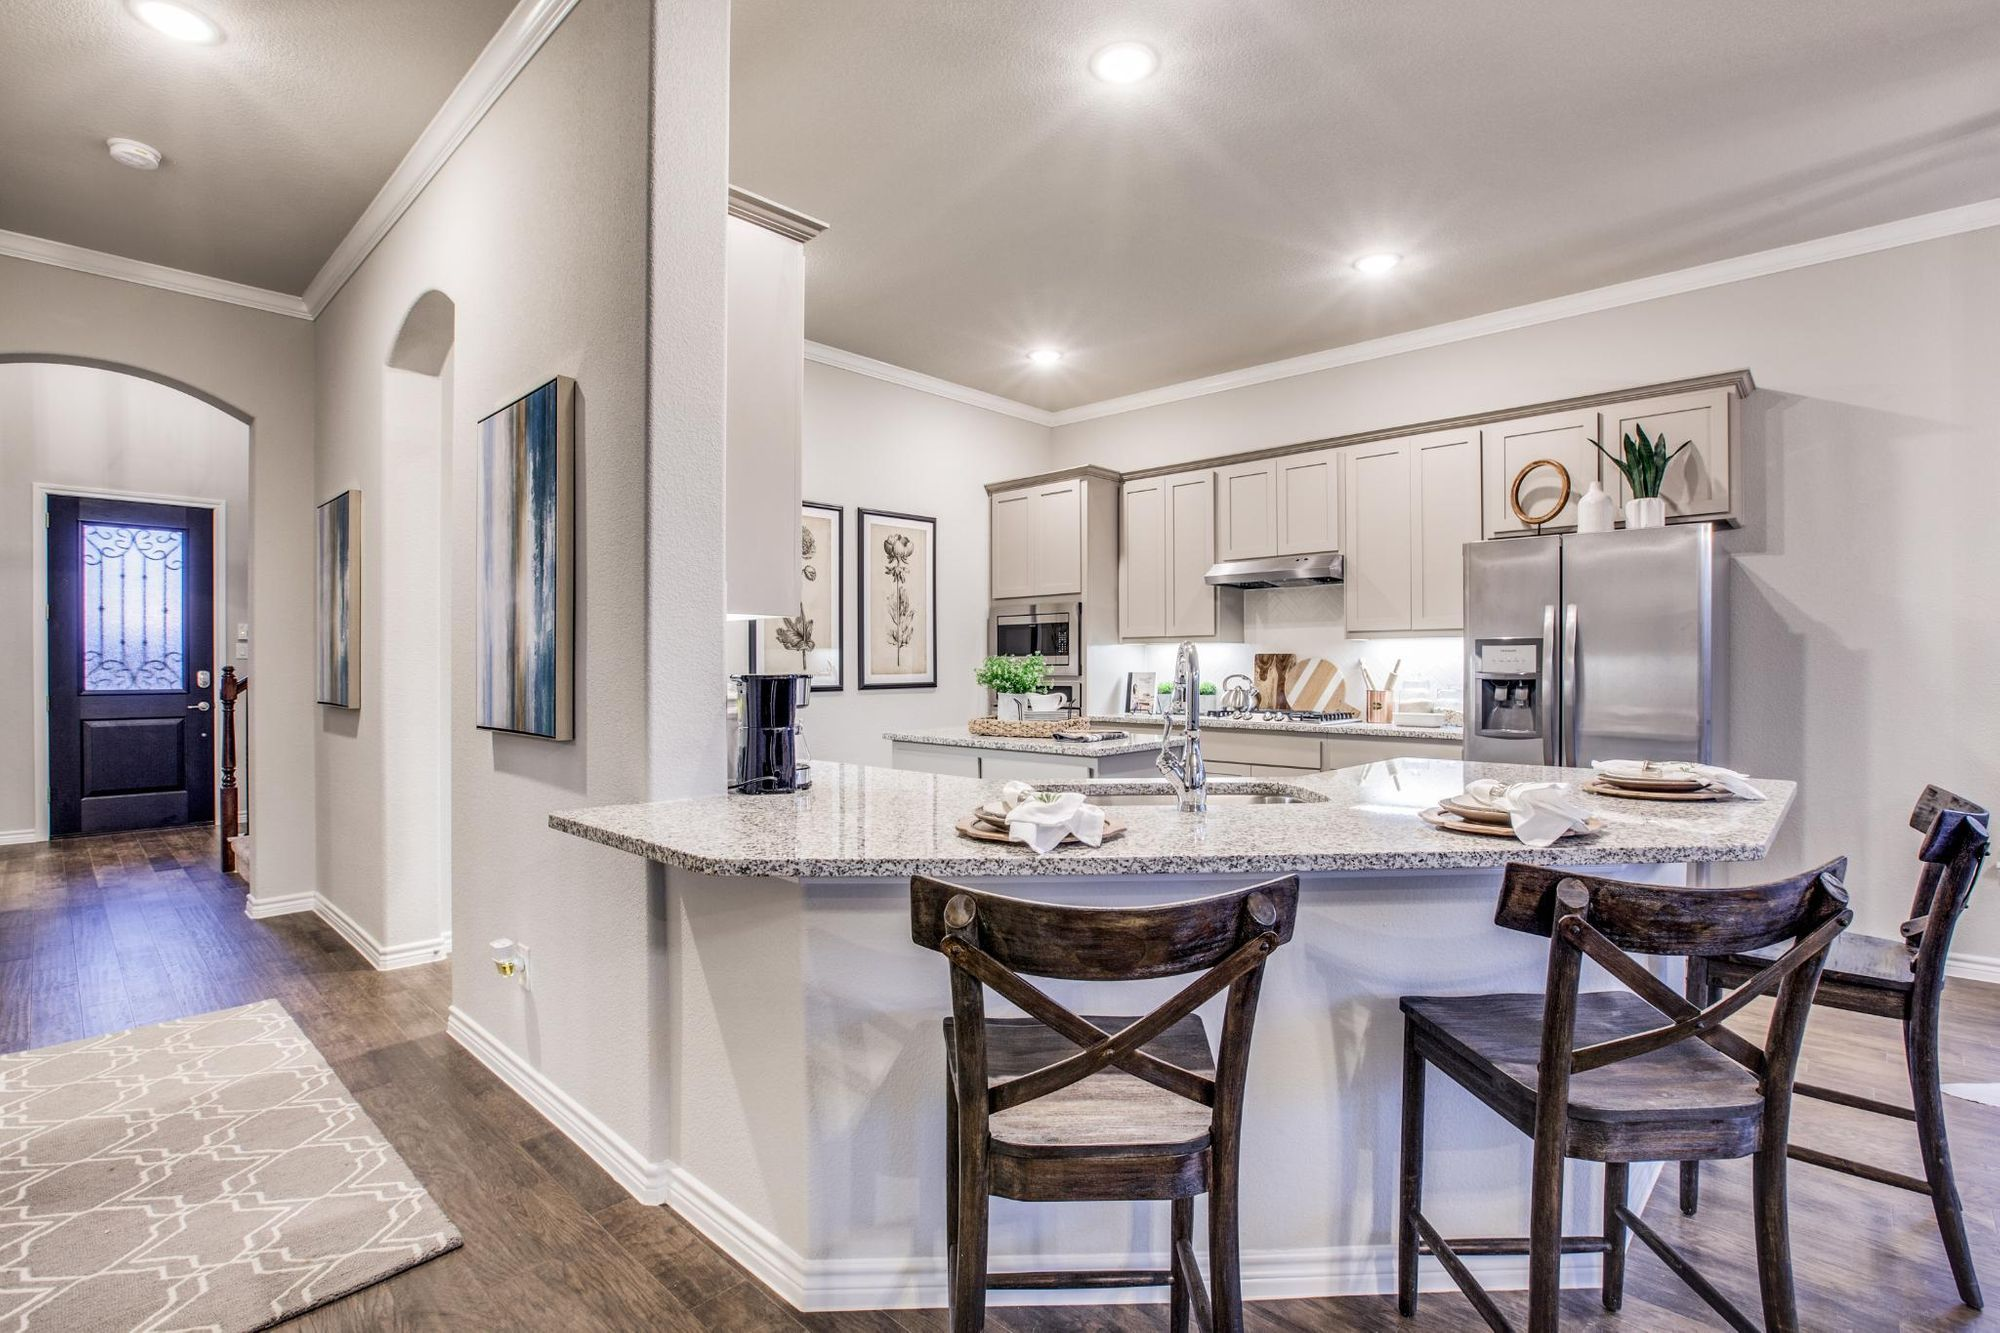 Kitchen featured in The Murray By Sandlin Homes  in Fort Worth, TX